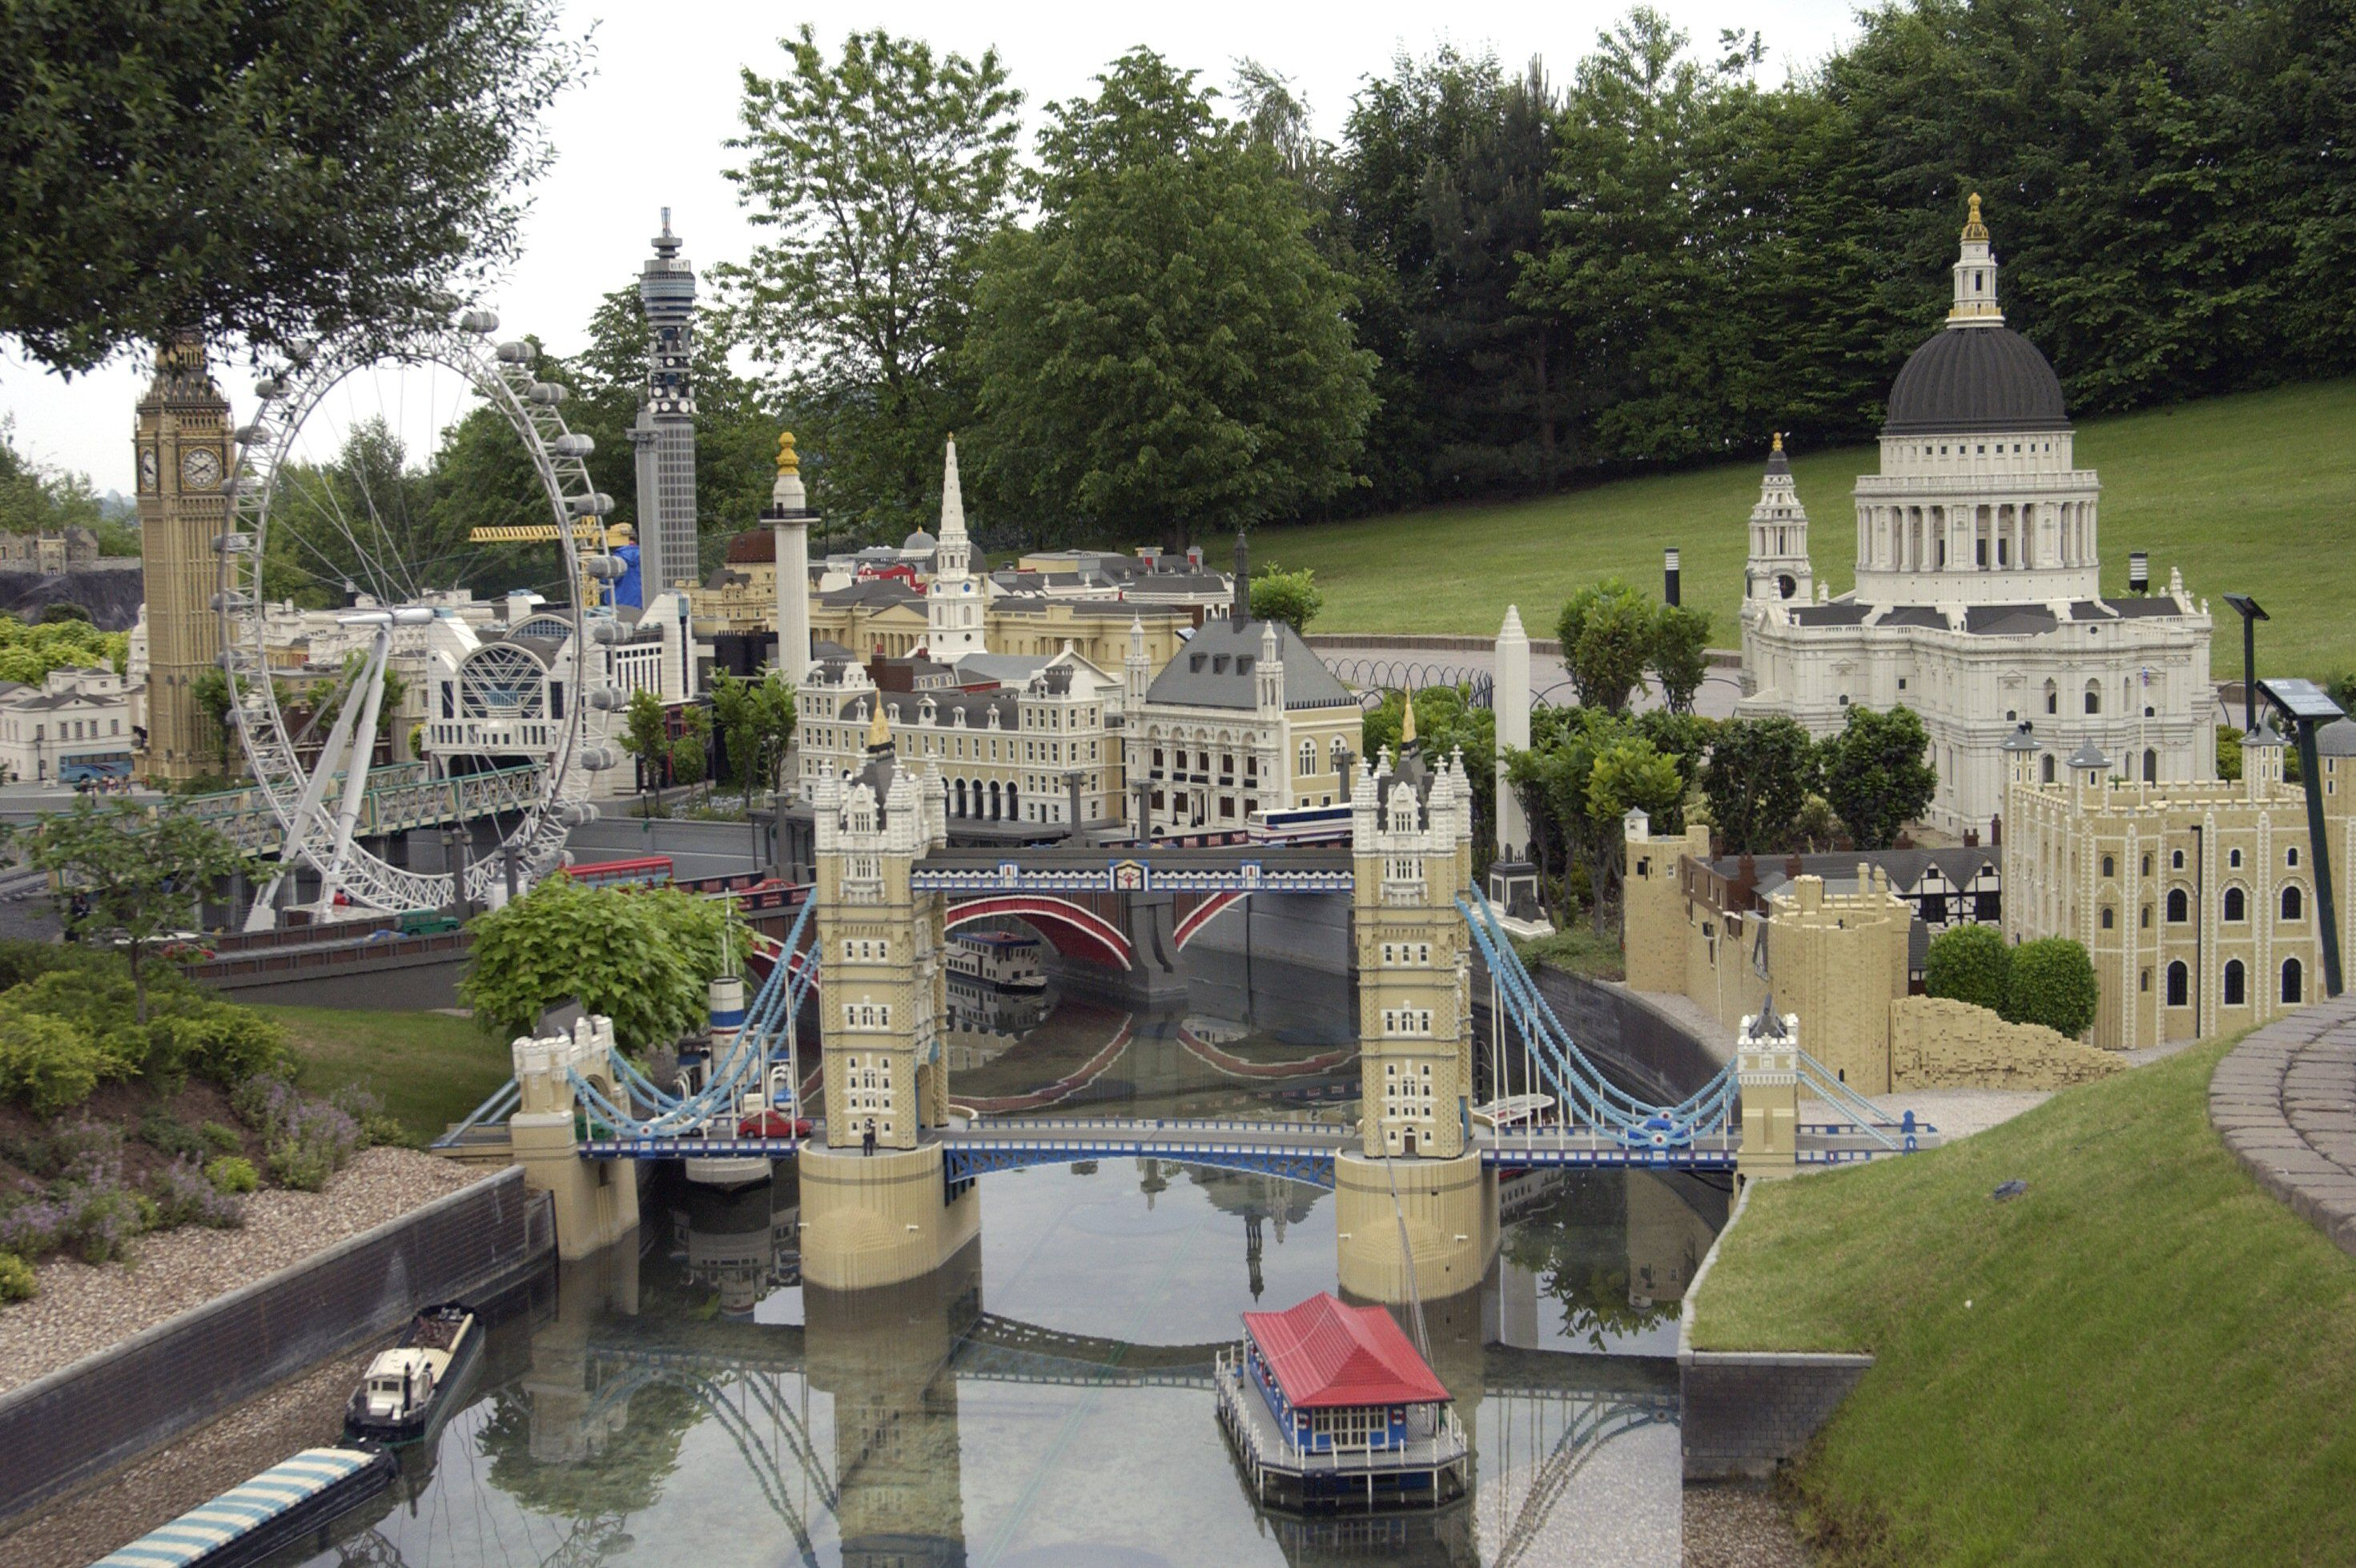 Legoland tourist attraction model replicas of London Eye, St Paul's Cathedral and Tower Bridge